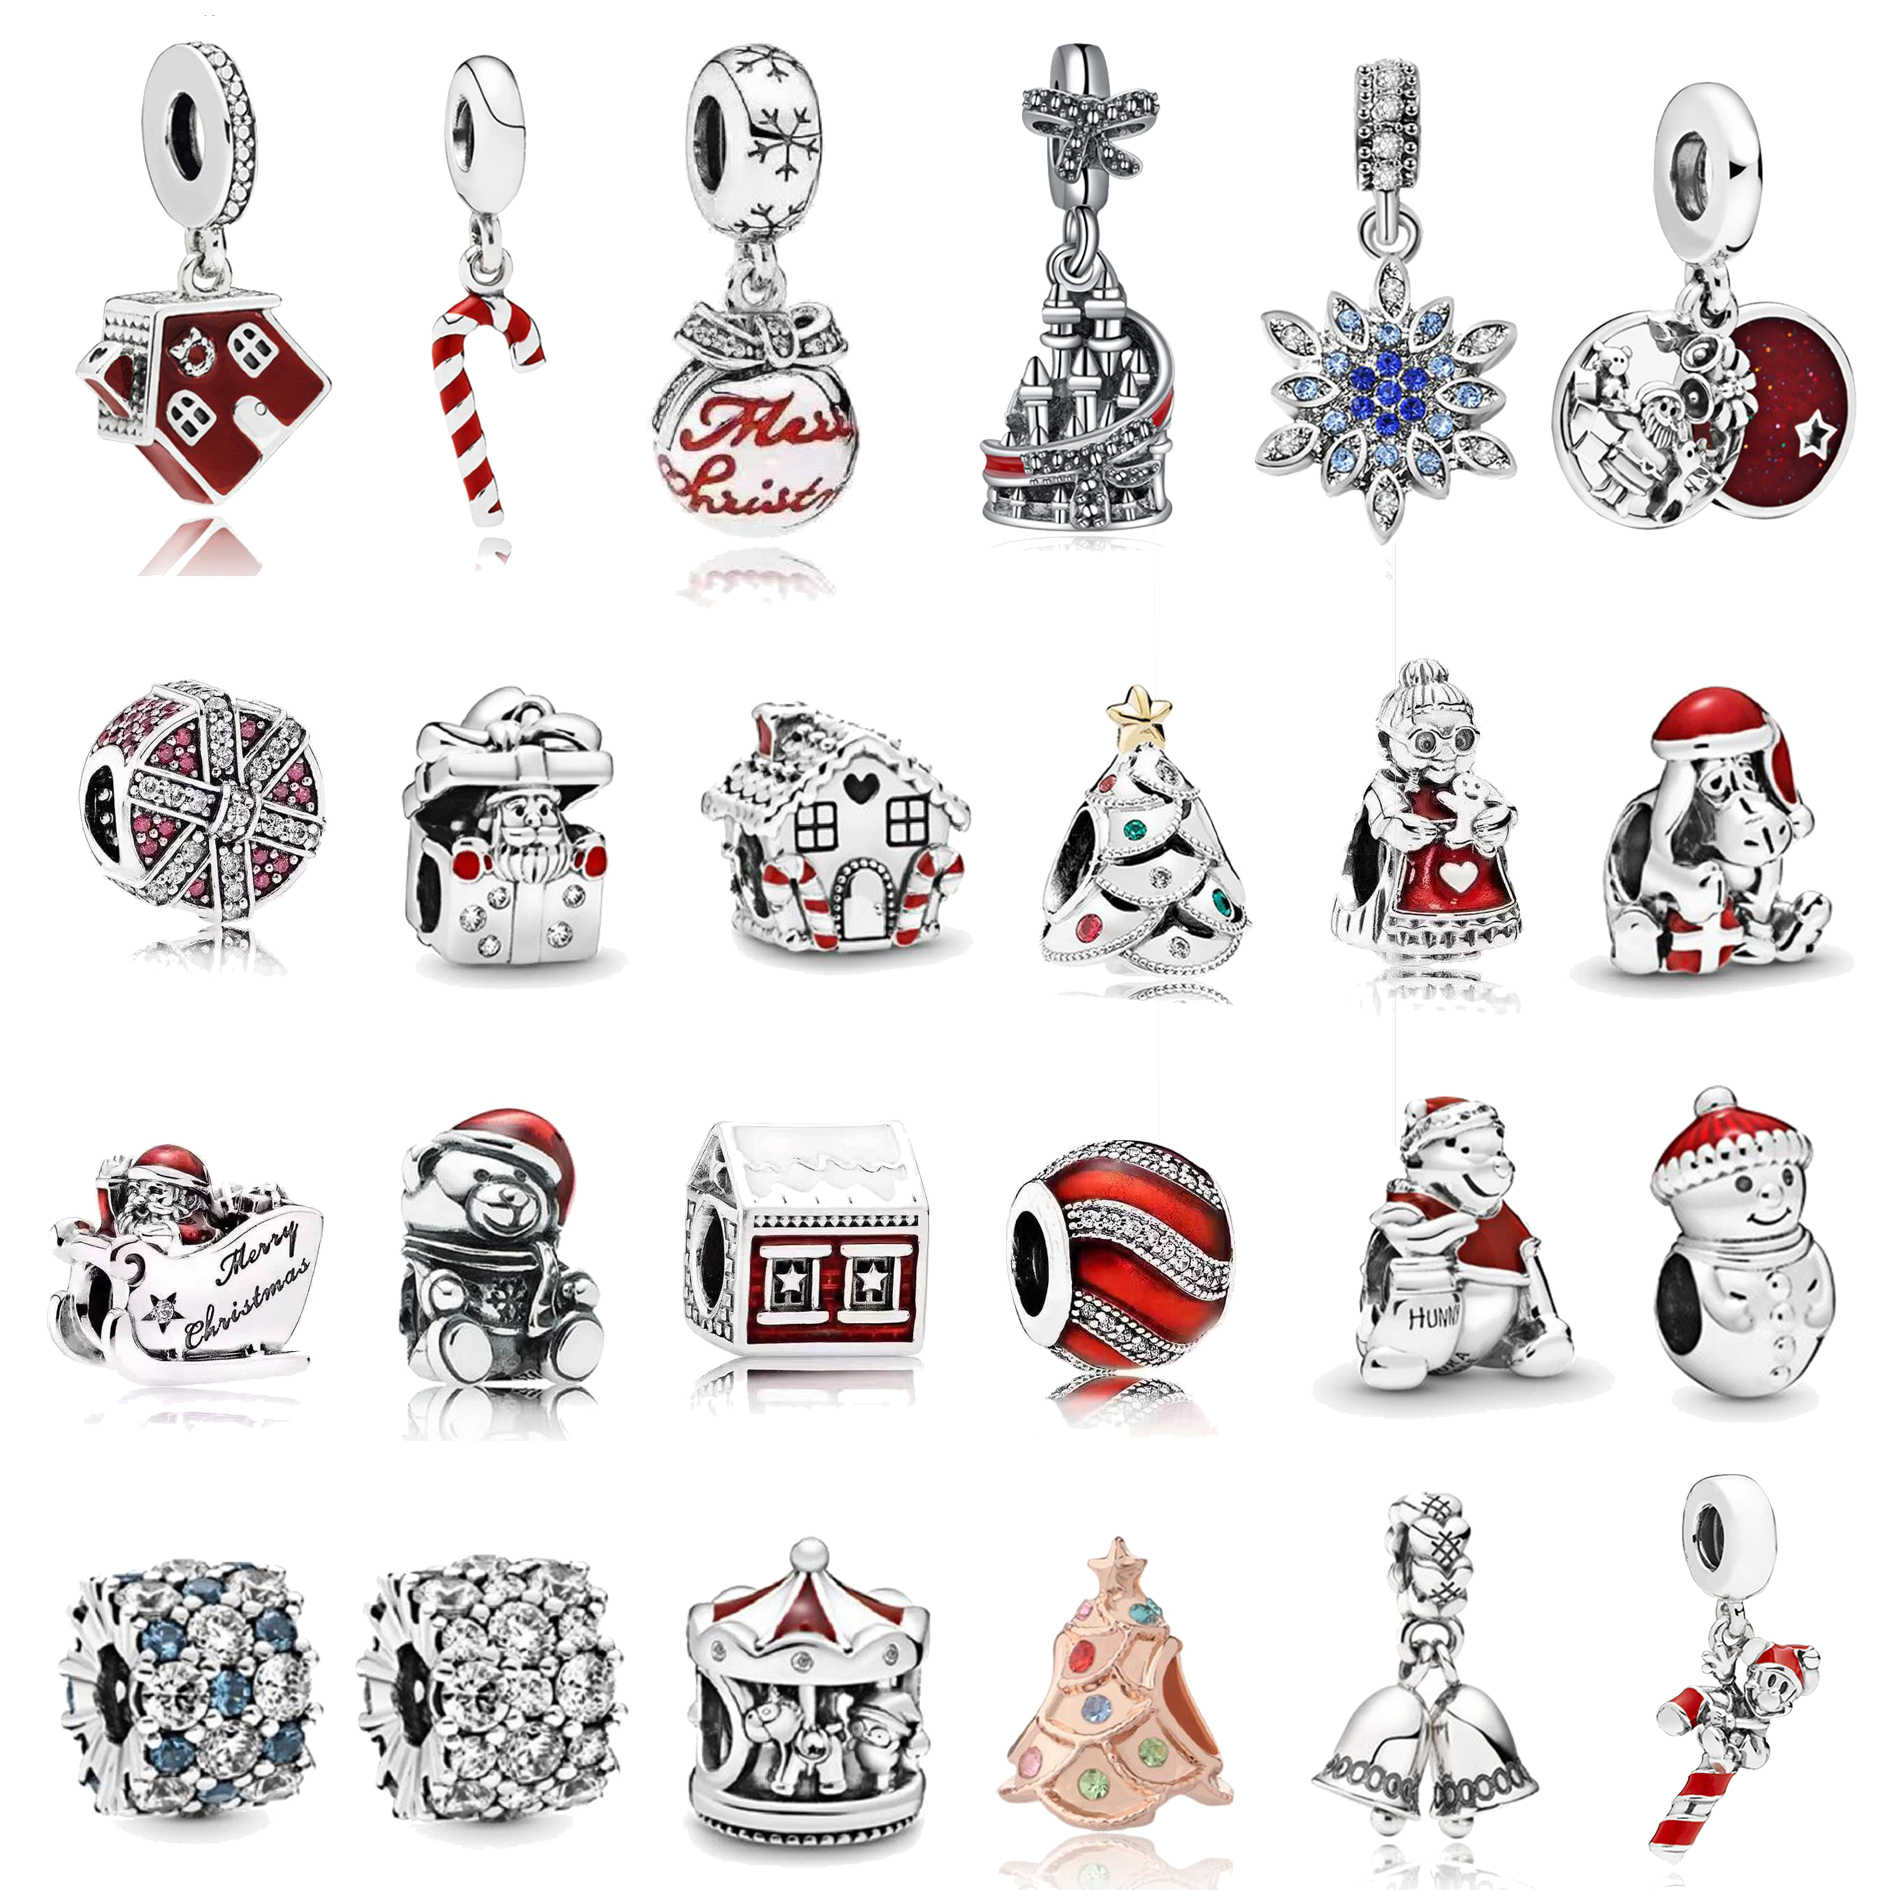 2020 New Alloy House Snowman Santa  Christmas European Bead Charm Fit Bracelets Bangles Necklace DIY Women Jewelry Gifts